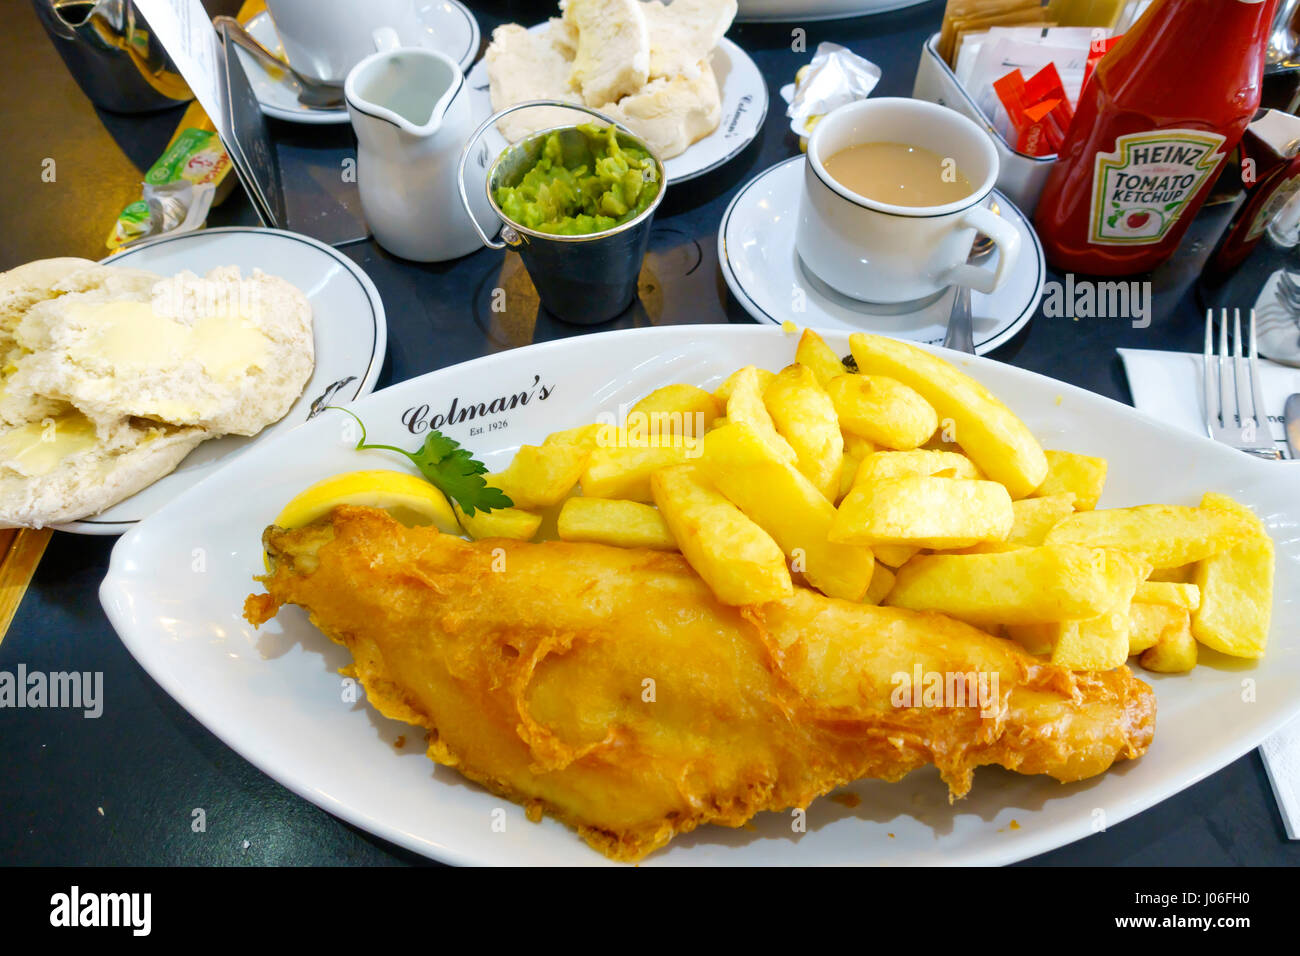 Excellent fish and chips at Colman's famous fish restaurant in South Shields founded in 1926, with a bread roll - Stock Image